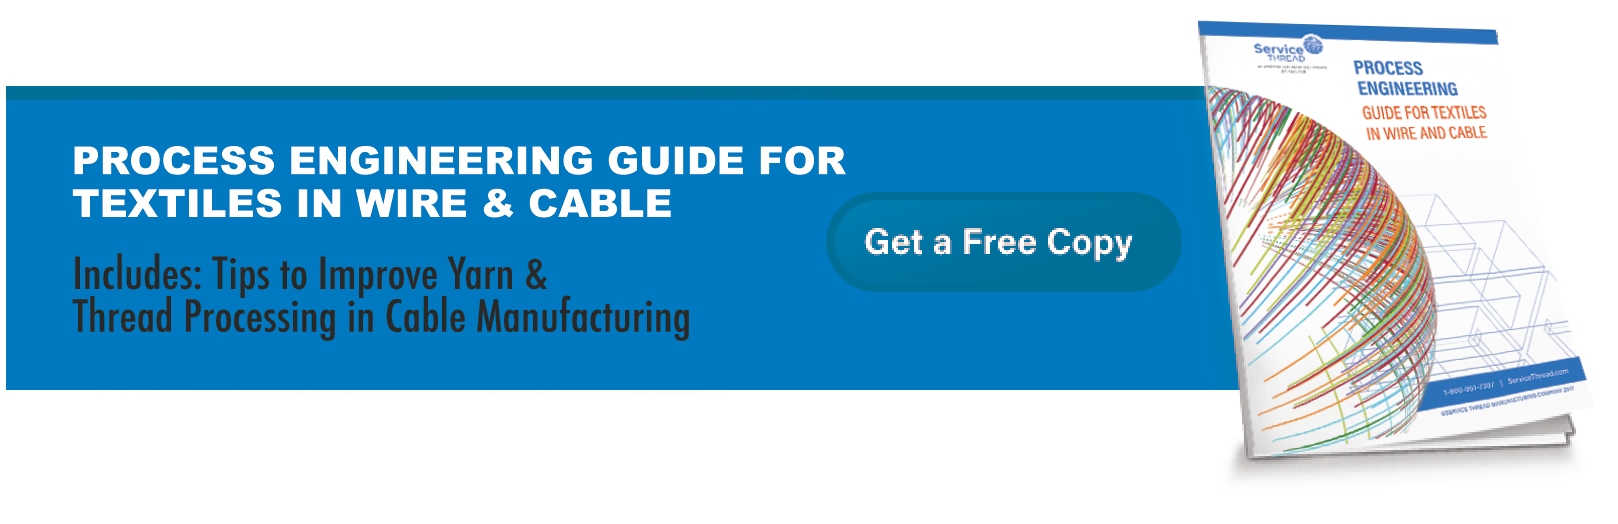 Process Engineering Guide eBook